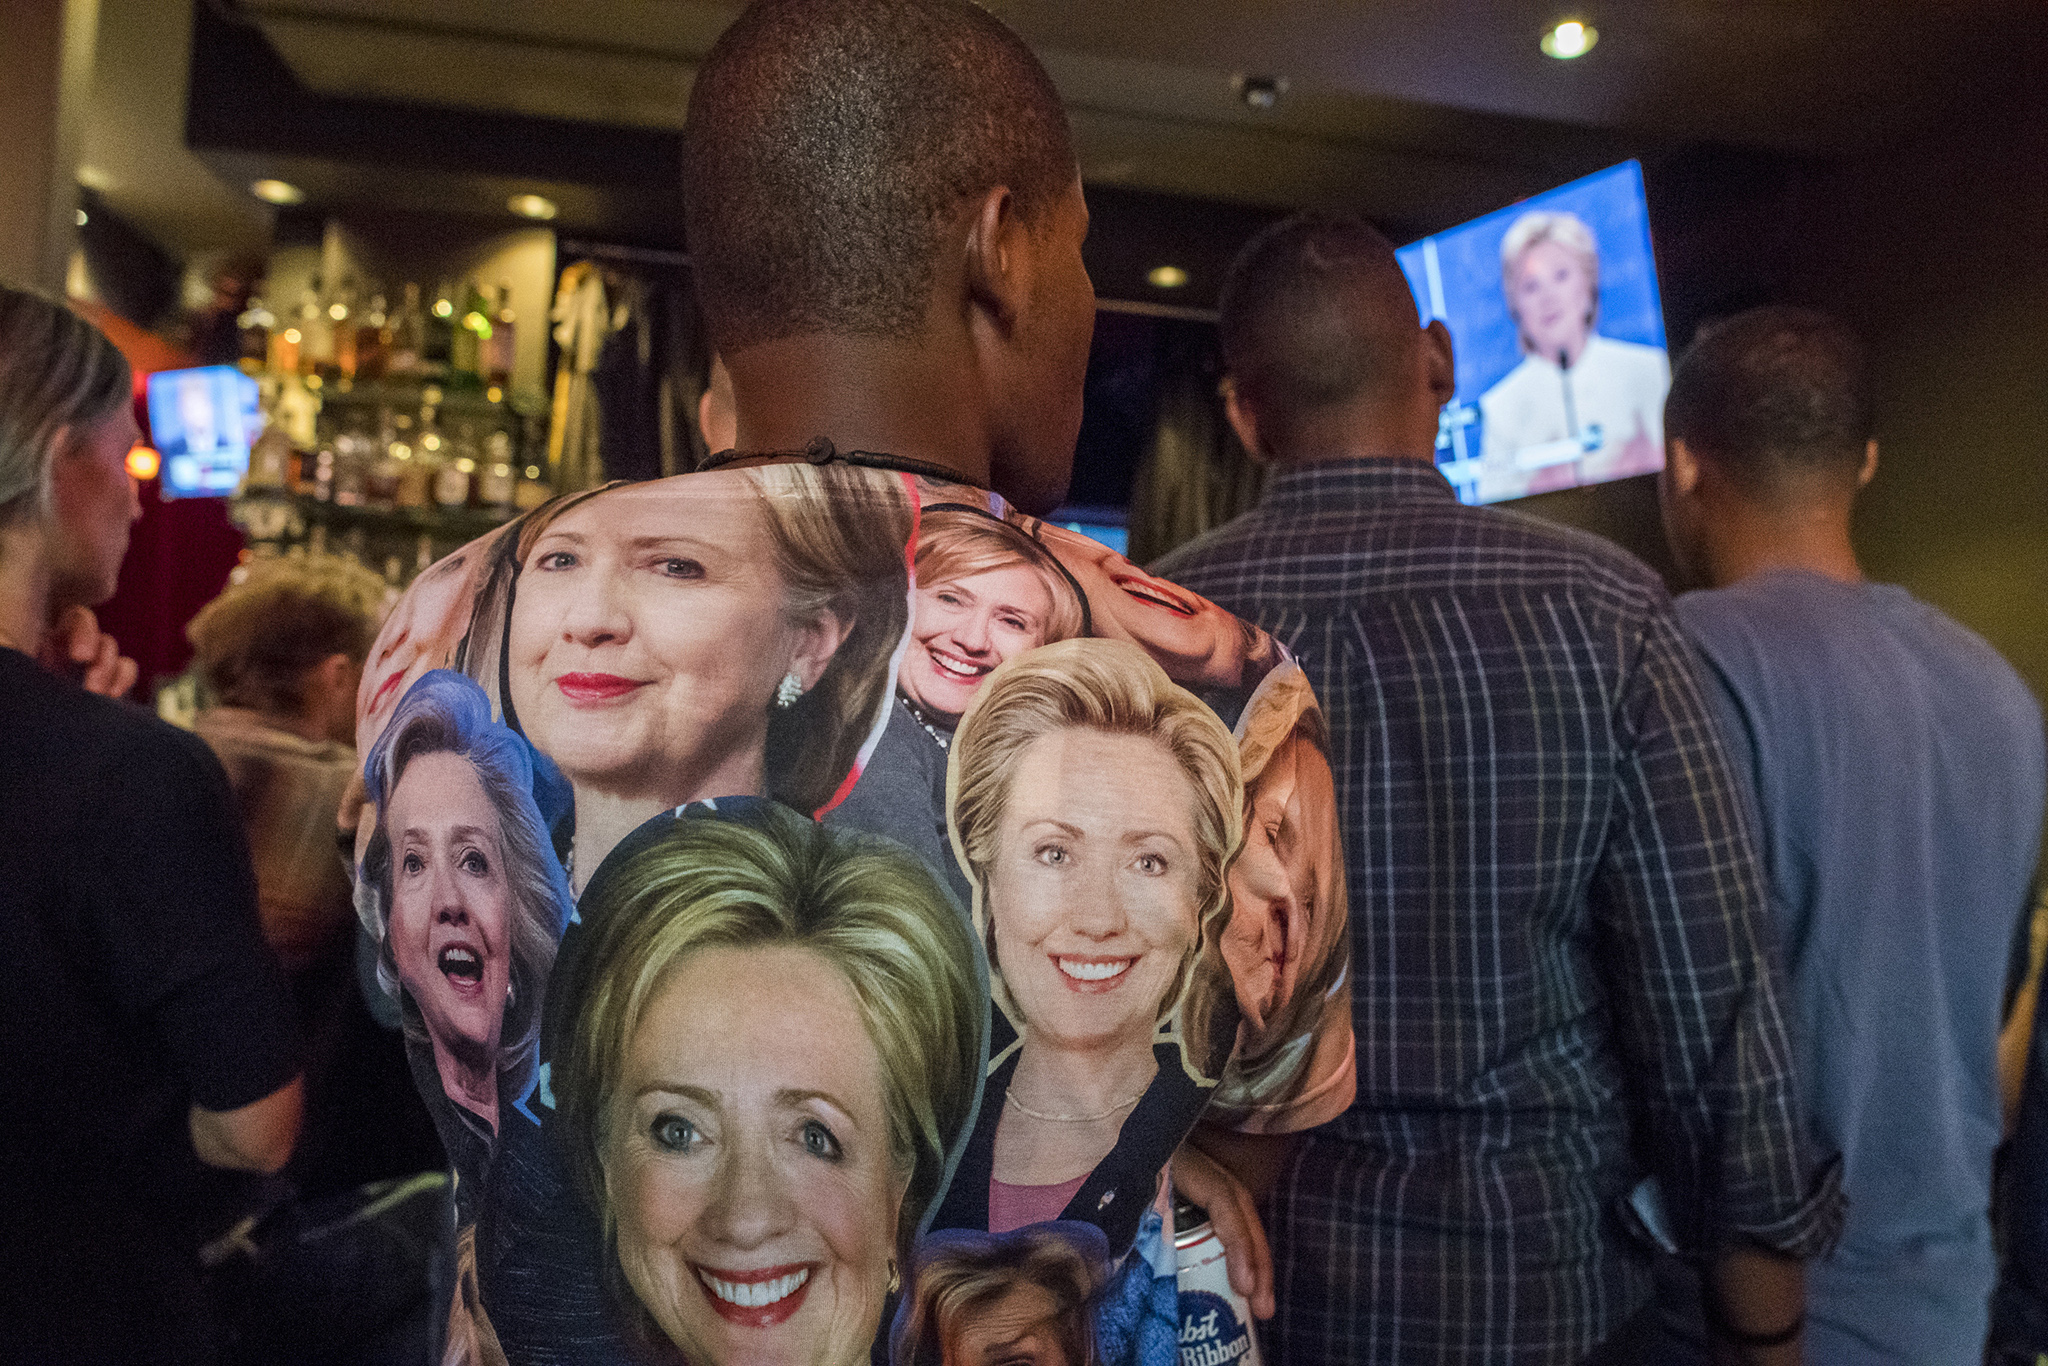 A man wears a shirt with photographs of Hillary Clinton, 2016 Democratic presidential nominee, while watching the third U.S. presidential debate at a viewing party in San Francisco, California, U.S., on Wednesday, Oct. 19, 2016. Donald Trump is trying another wild-card play in the third and final presidential debate with Hillary Clinton in perhaps his last chance to reverse his campaign's spiral and halt his Democratic rival's rising electoral strength. Photographer: David Paul Morris/Bloomberg